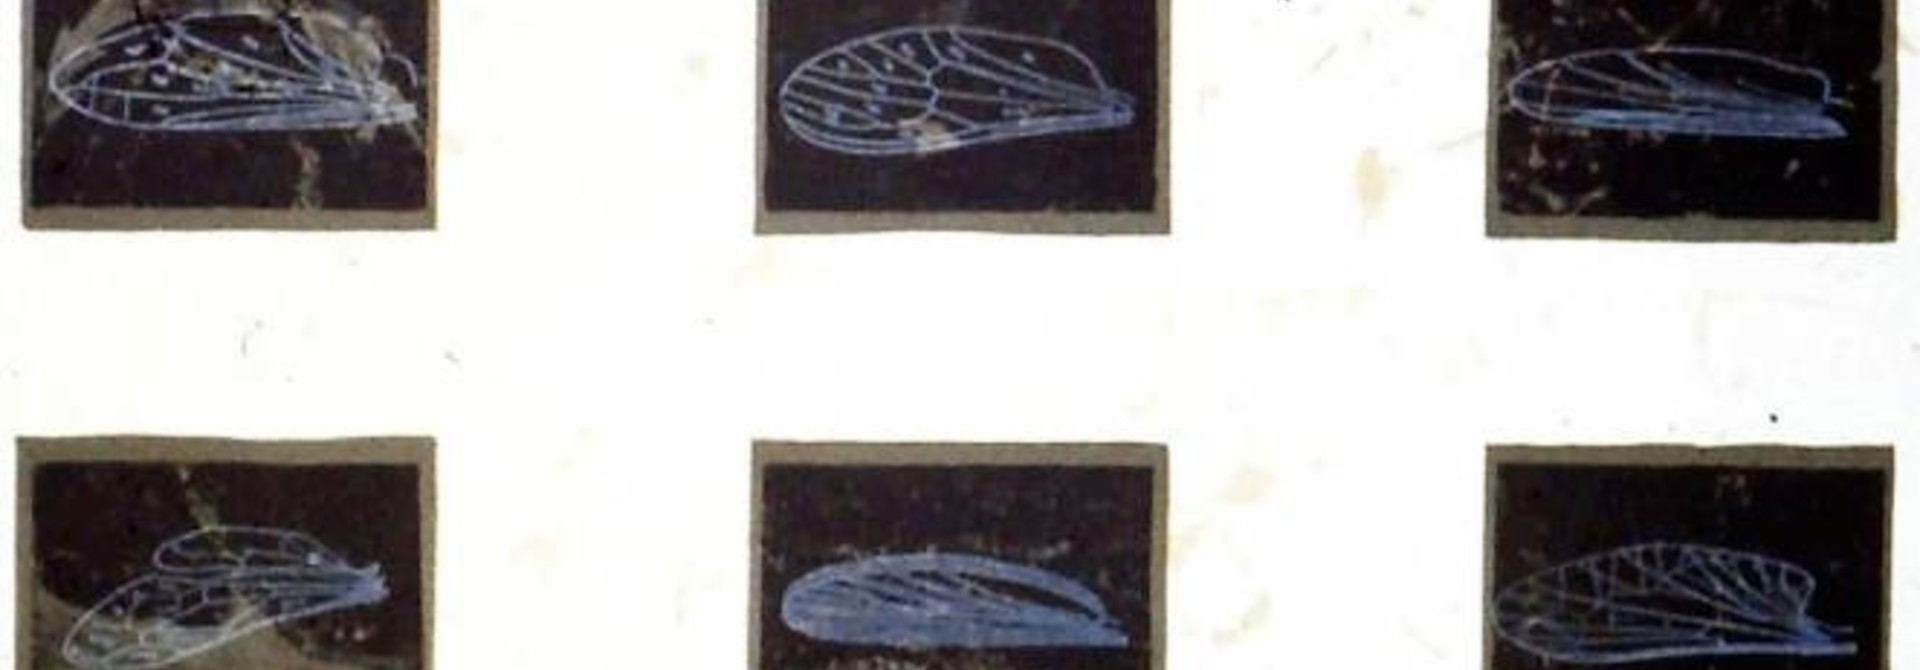 Diversity (Insect Wing Variations)